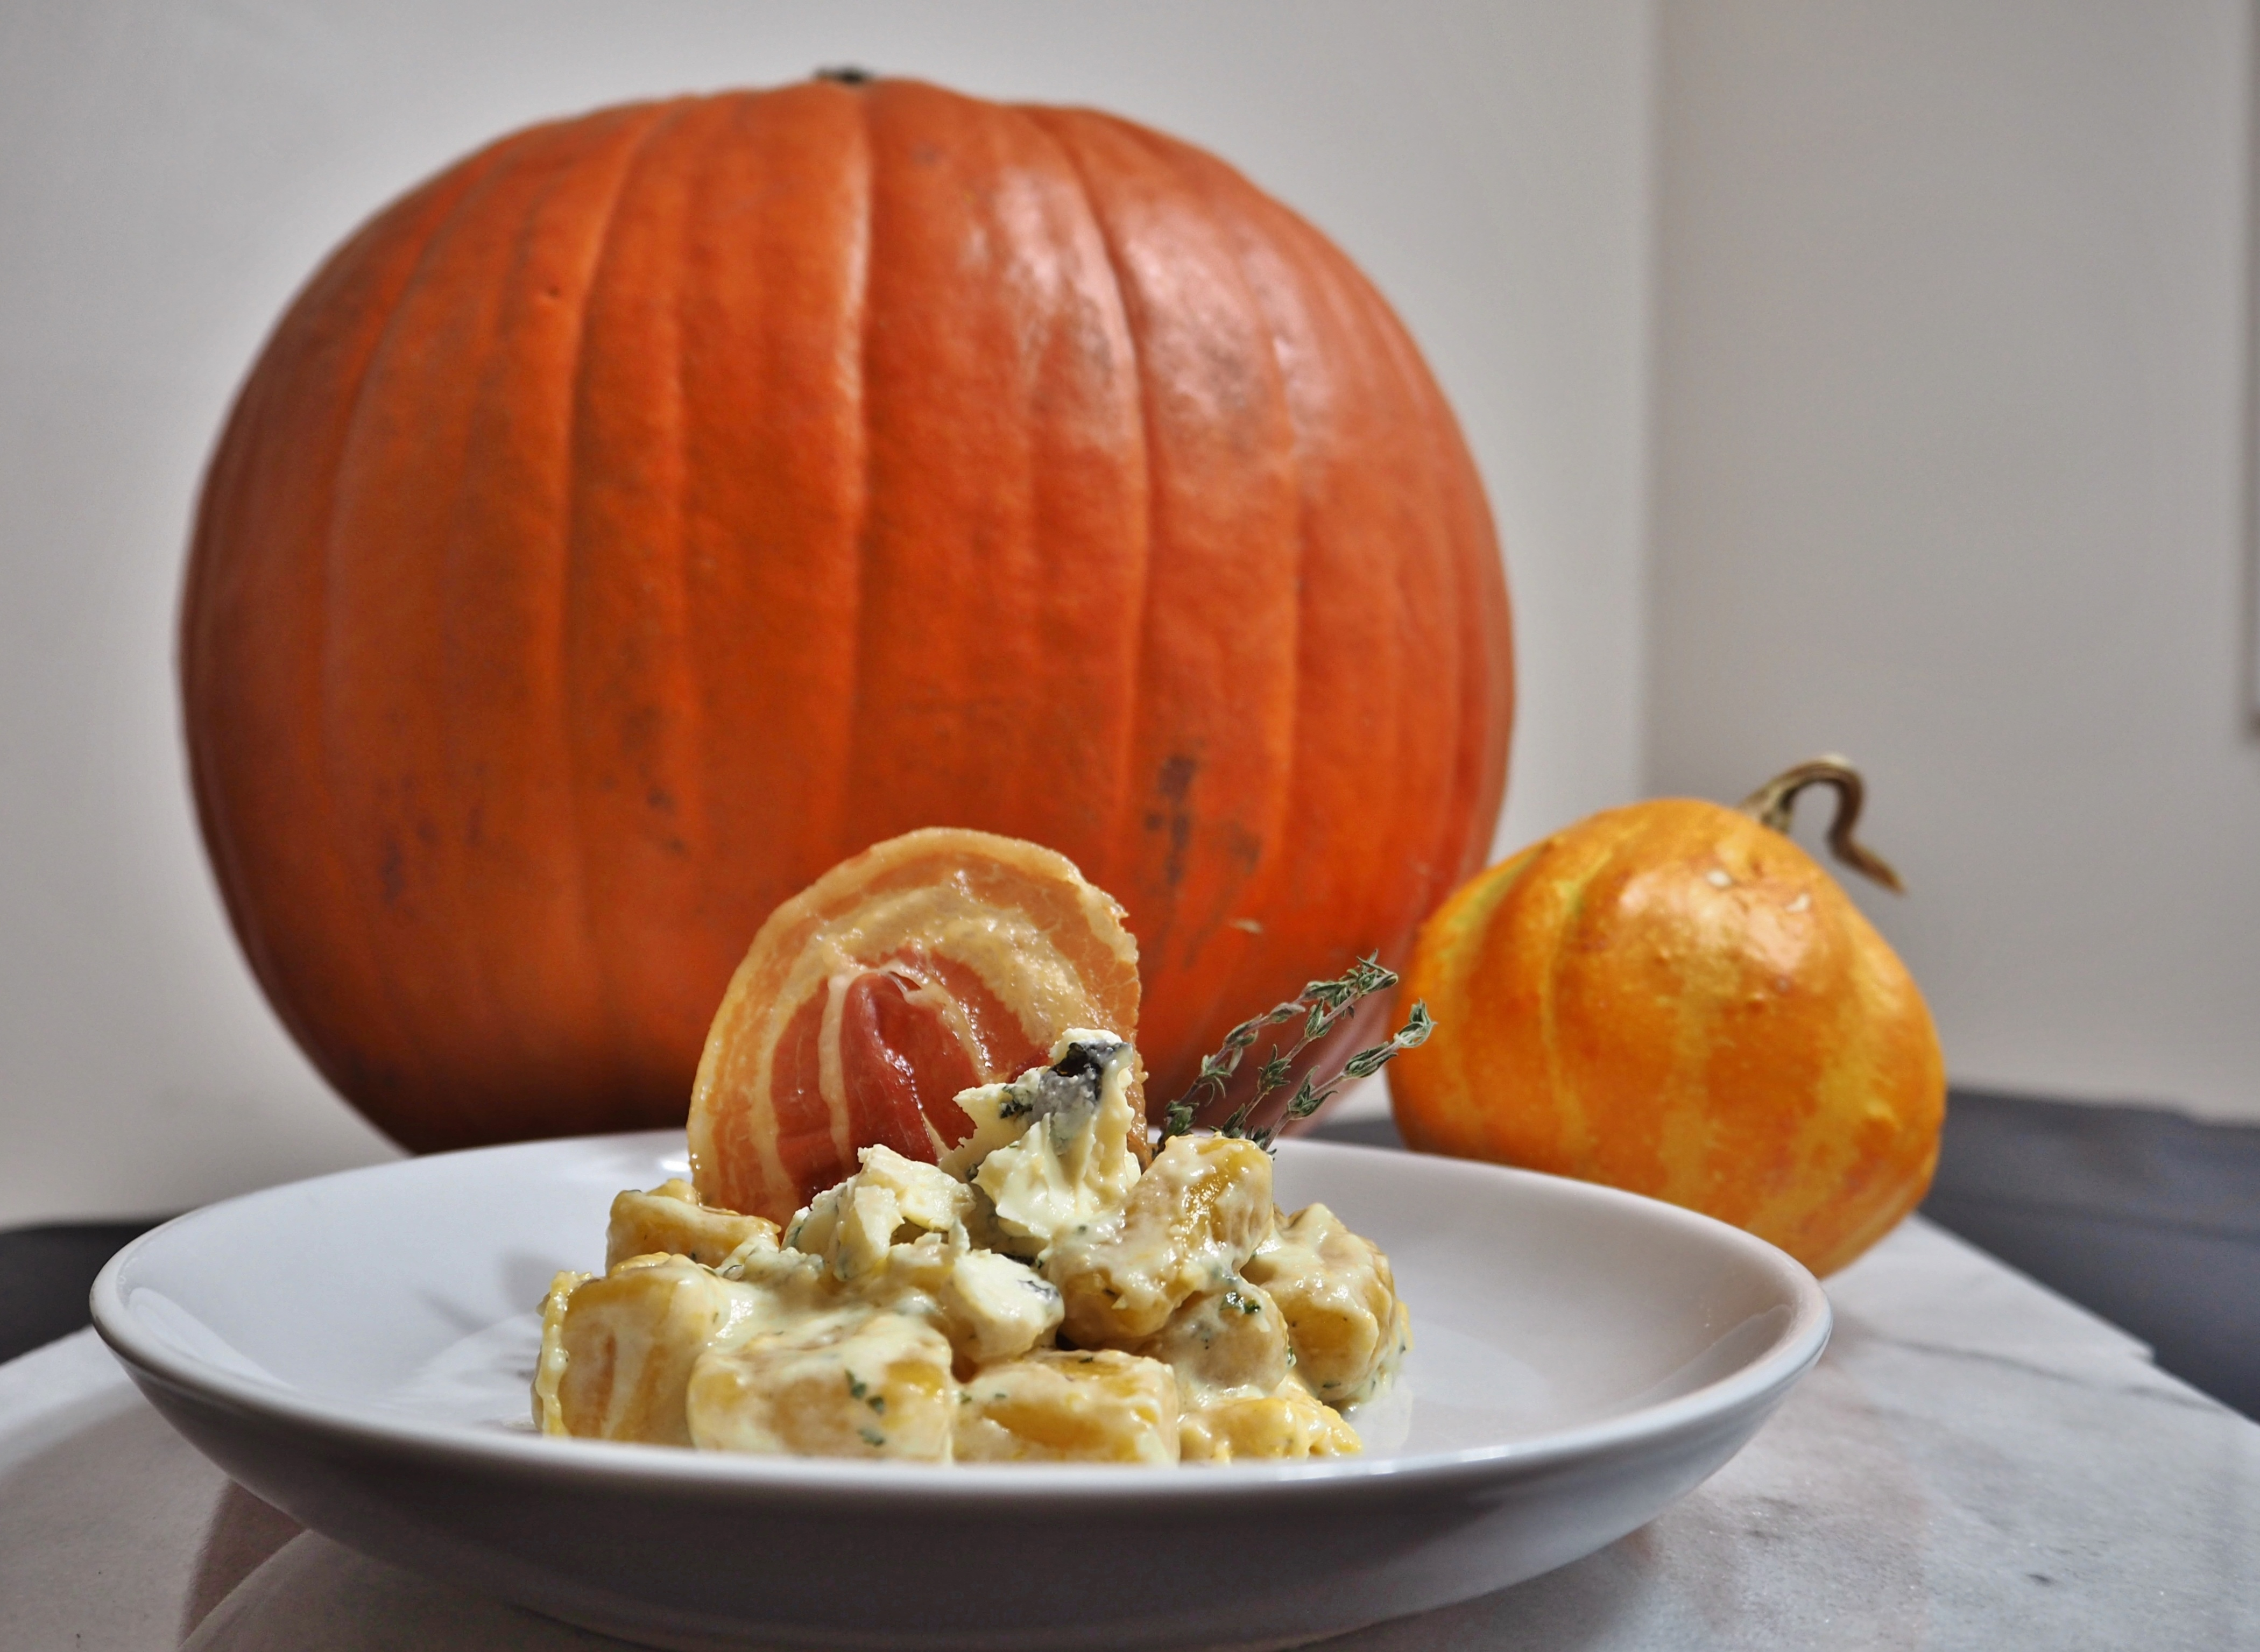 Pumpkin Carving & Food – Using all of the Pumpkin